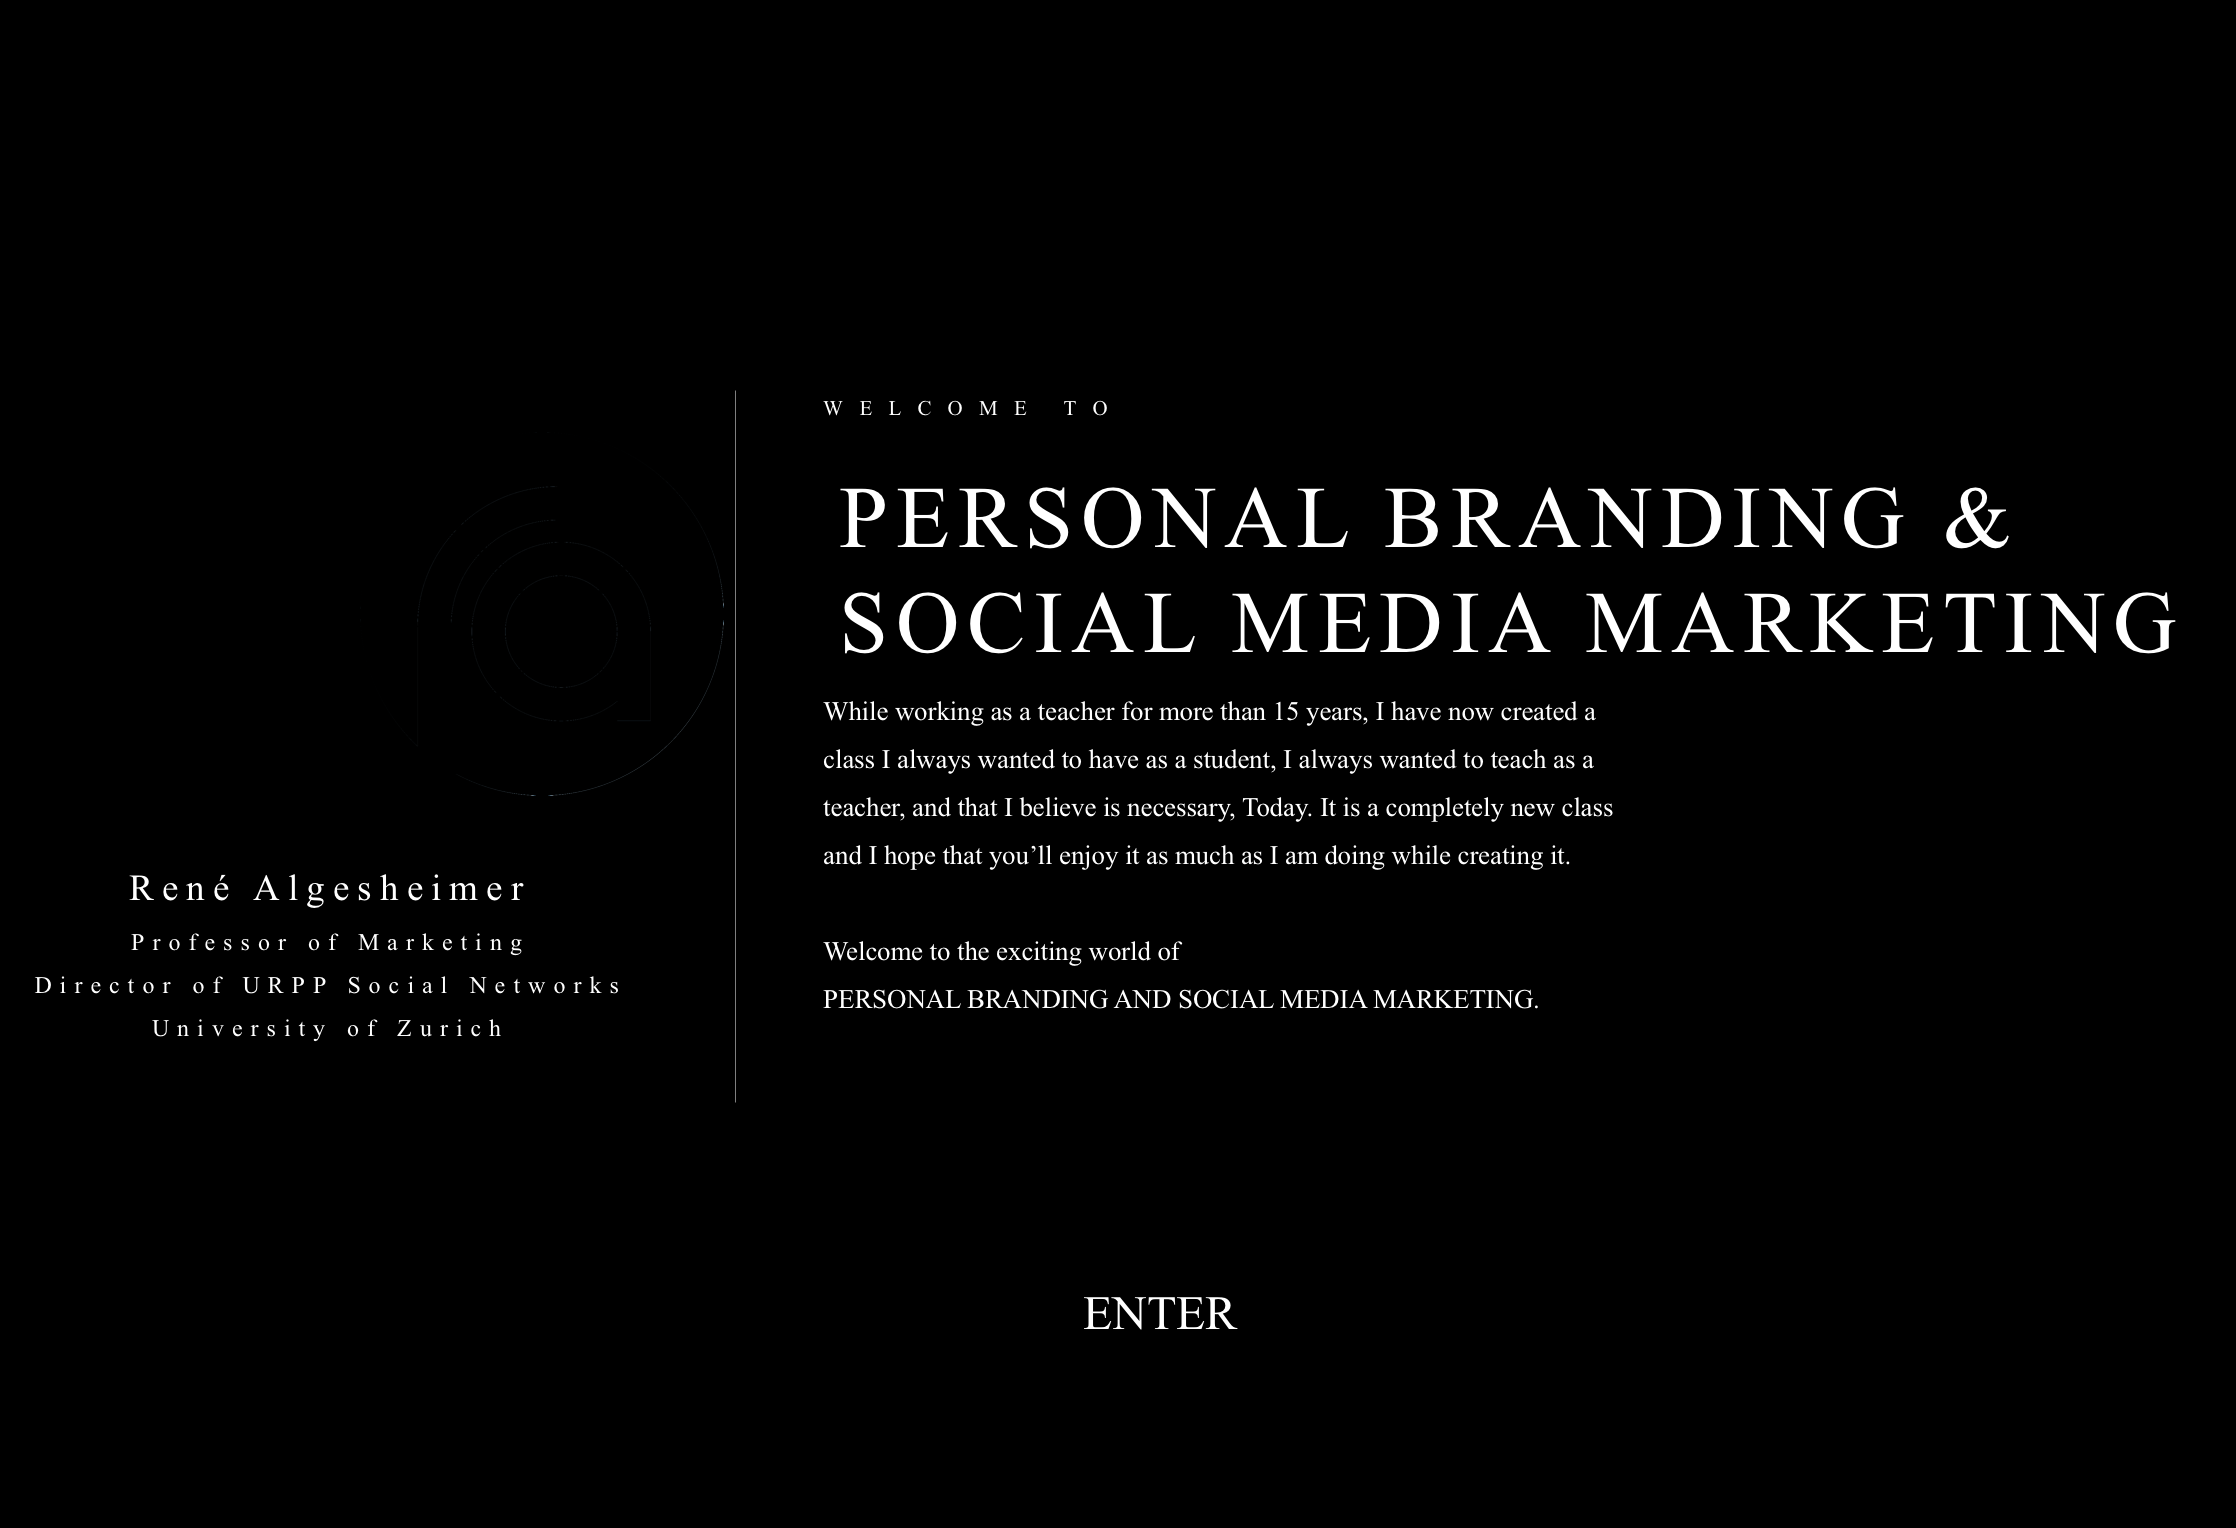 Personal Branding & Social Media Marketing